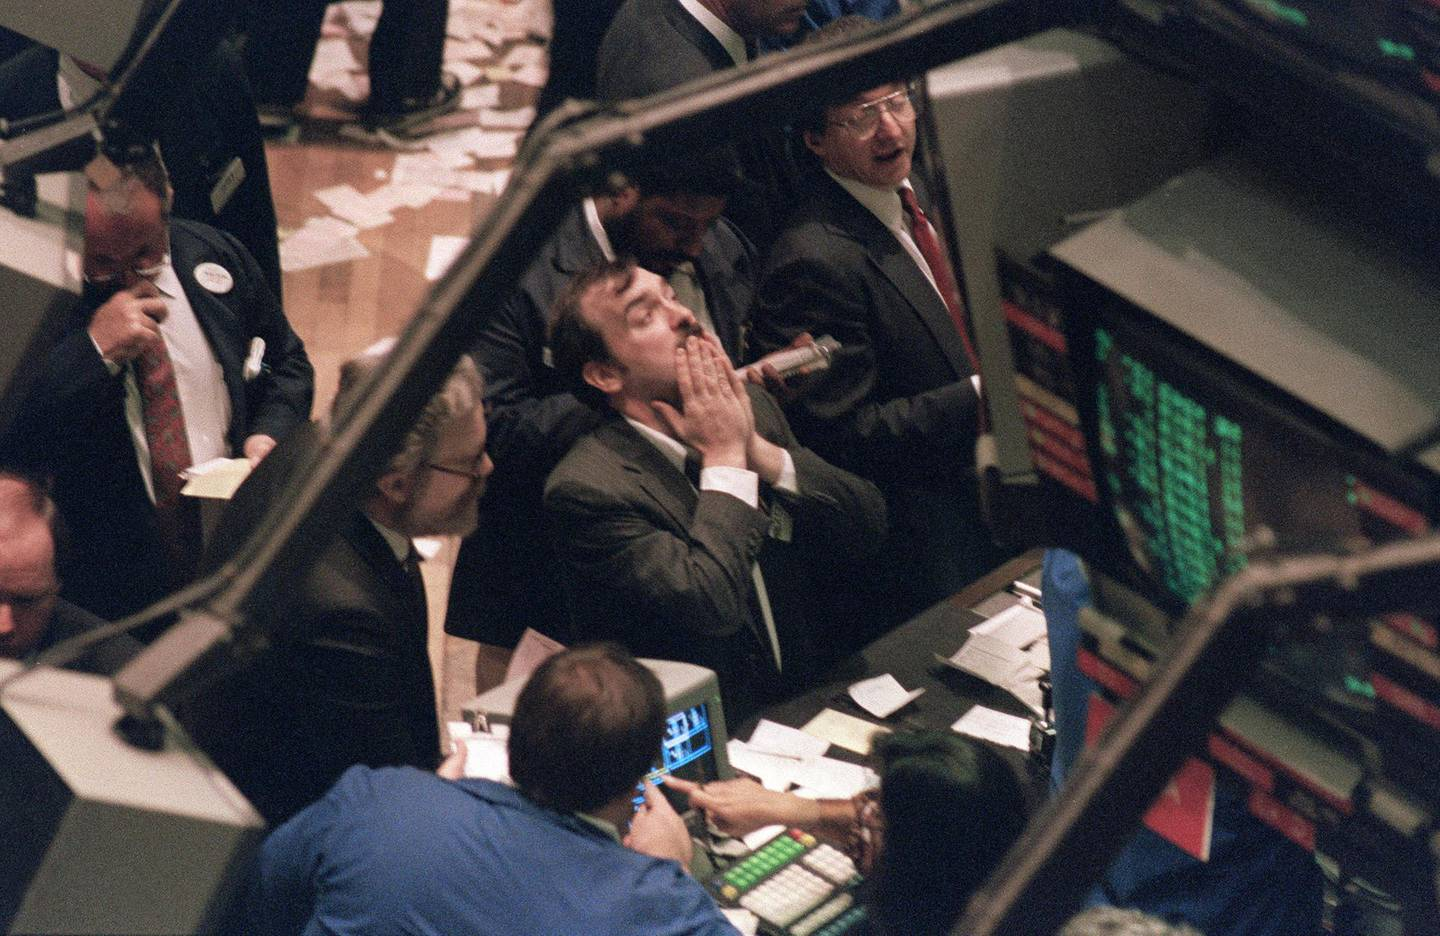 A trader (c) on the New York Stock Exchange looks at stock rates 19 October 1987 as stocks were devastated during one of the most frantic days in the exchange's history.  The Dow Jones index plummeted over 200 points in record trading. (Photo by MARIA BASTONE / AFP)